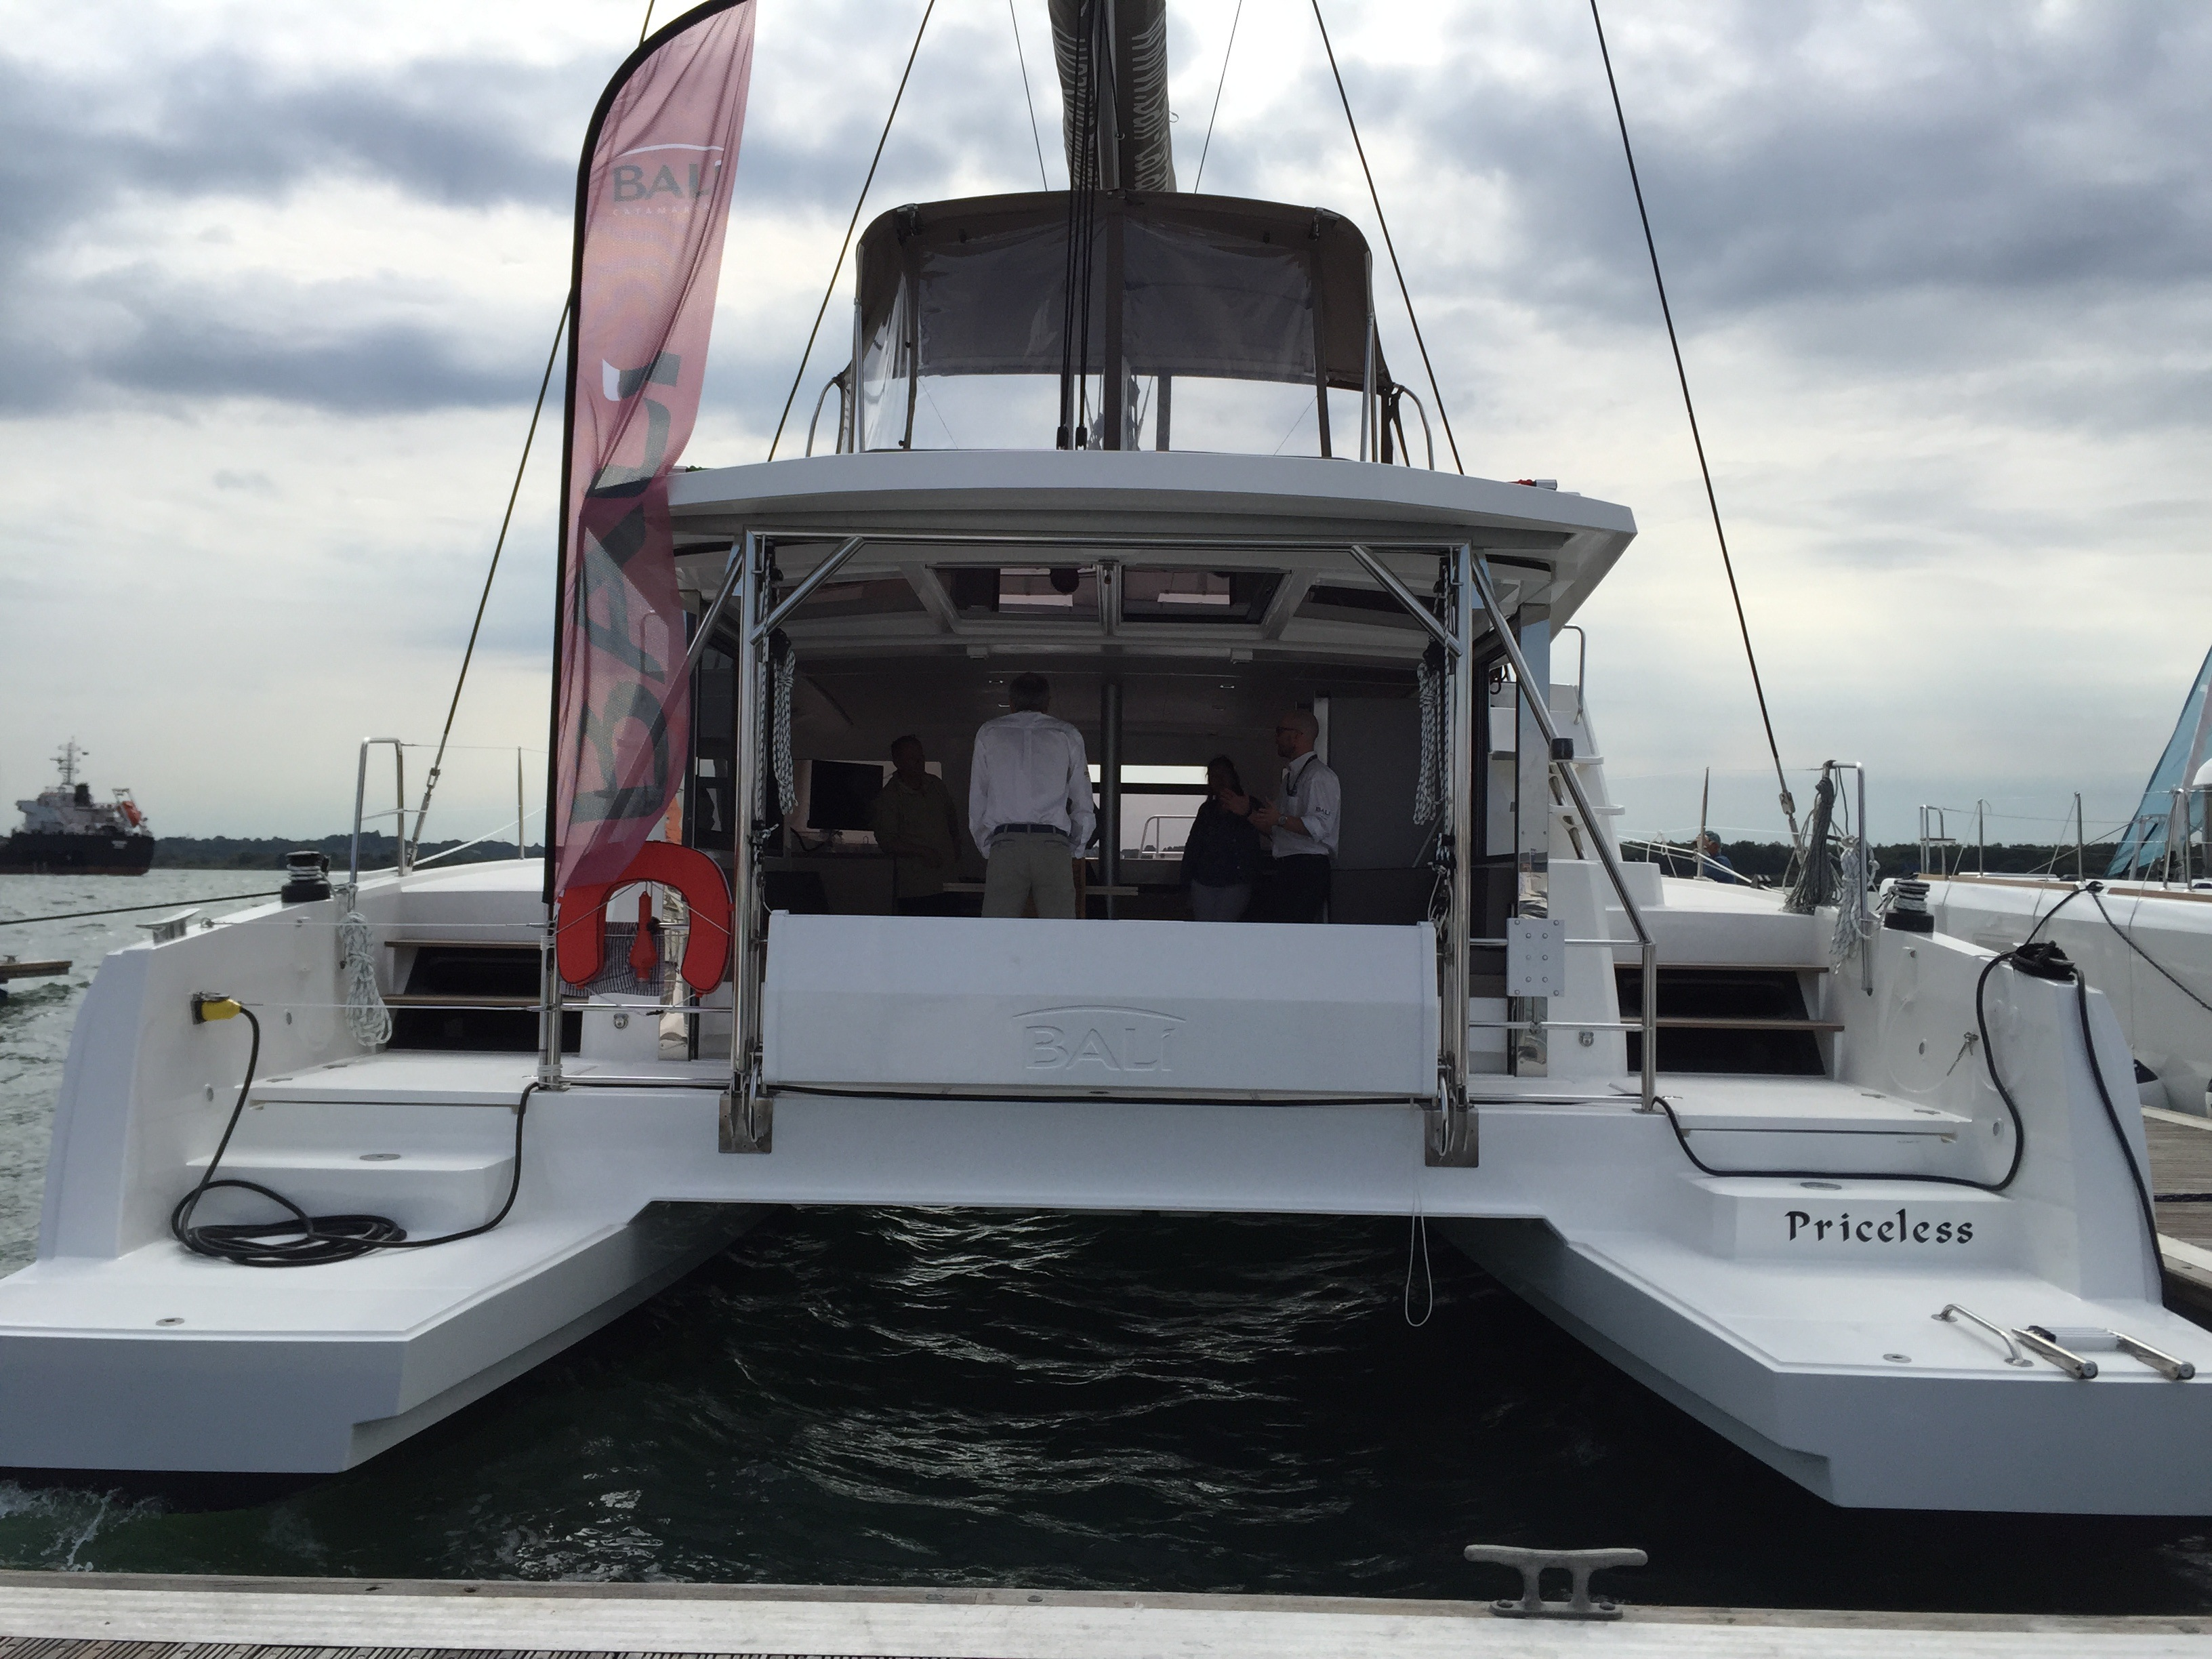 The Stunning Bali 4.3 Catamaran – And We Were There!